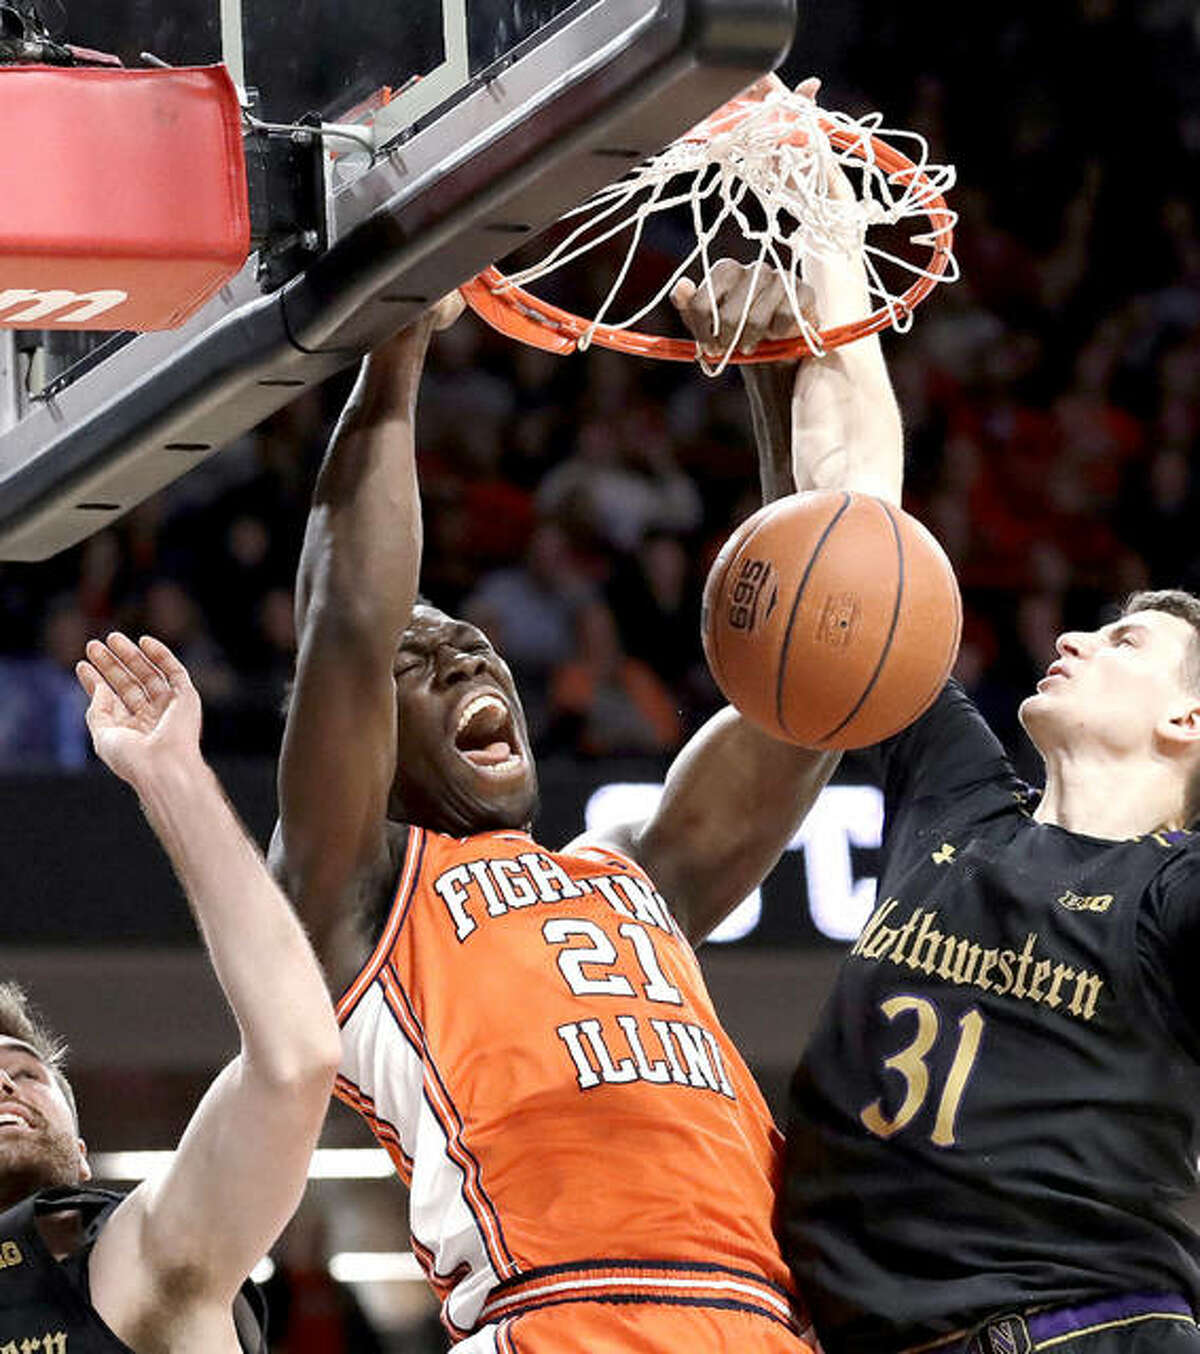 Illinois center Kofi Cockburn, center, dunks against Northwestern in 2020. Cockburn, who had entered the transfer portal and declared for the NBA Draft, last week decided instead to return to Illinois this season. Wednesday was his first day to work out with the team.